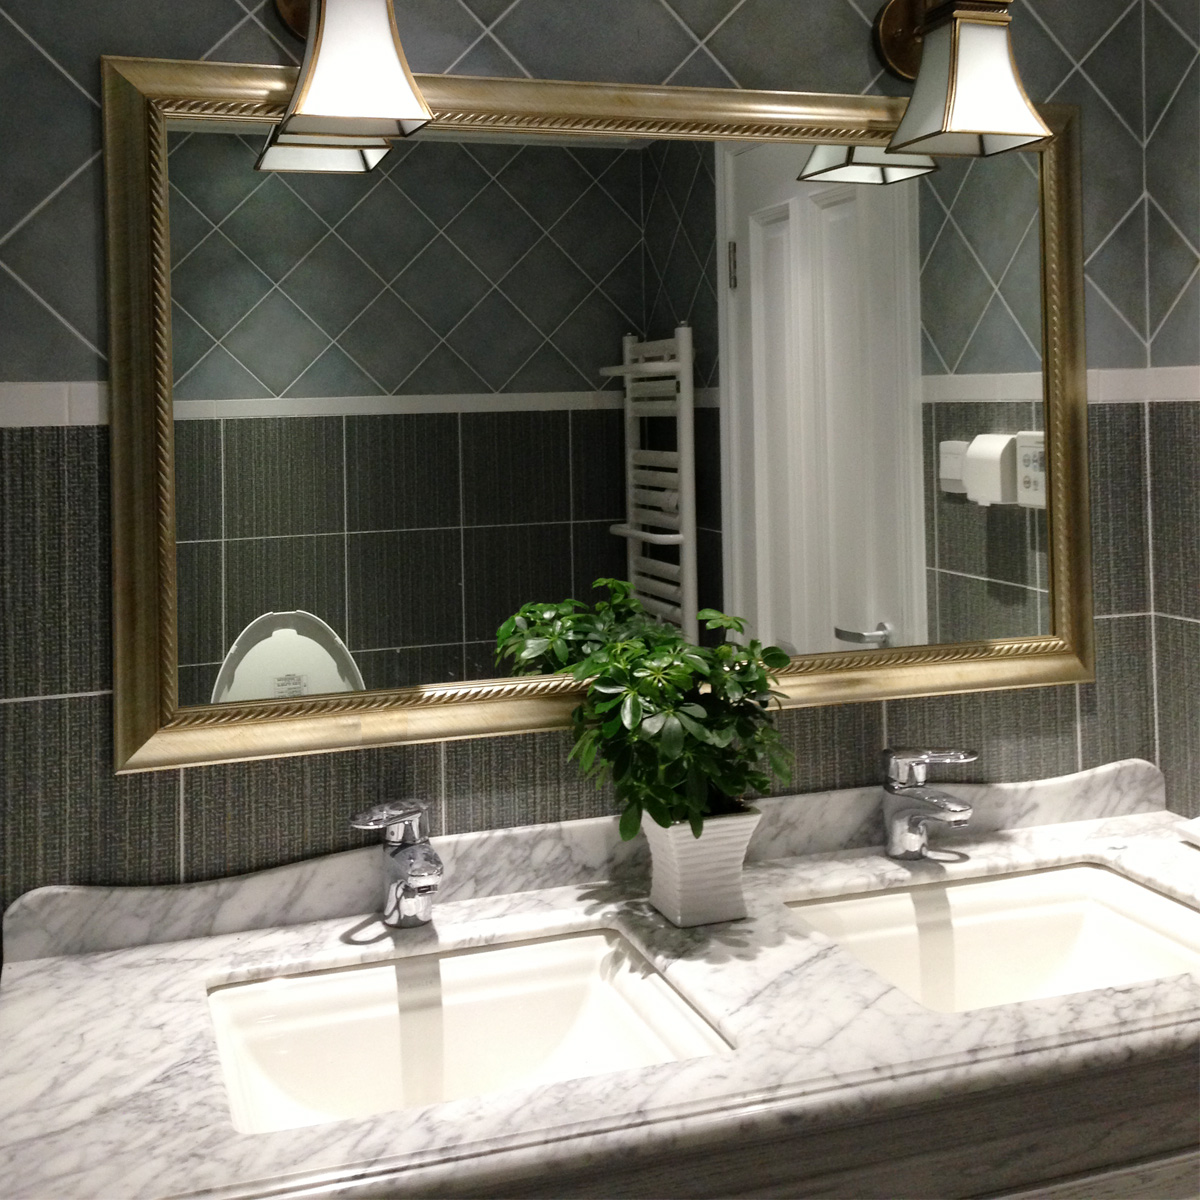 bathroom-modern-luxury-bathroom-decoration-with-brown-rectangular-mirror-frame-plus-wall-lamp-combine-with-black-tile-floor-and-white-granite-top-of-bathroom-cabinet-also-white-deep-sinks-cool-mirror